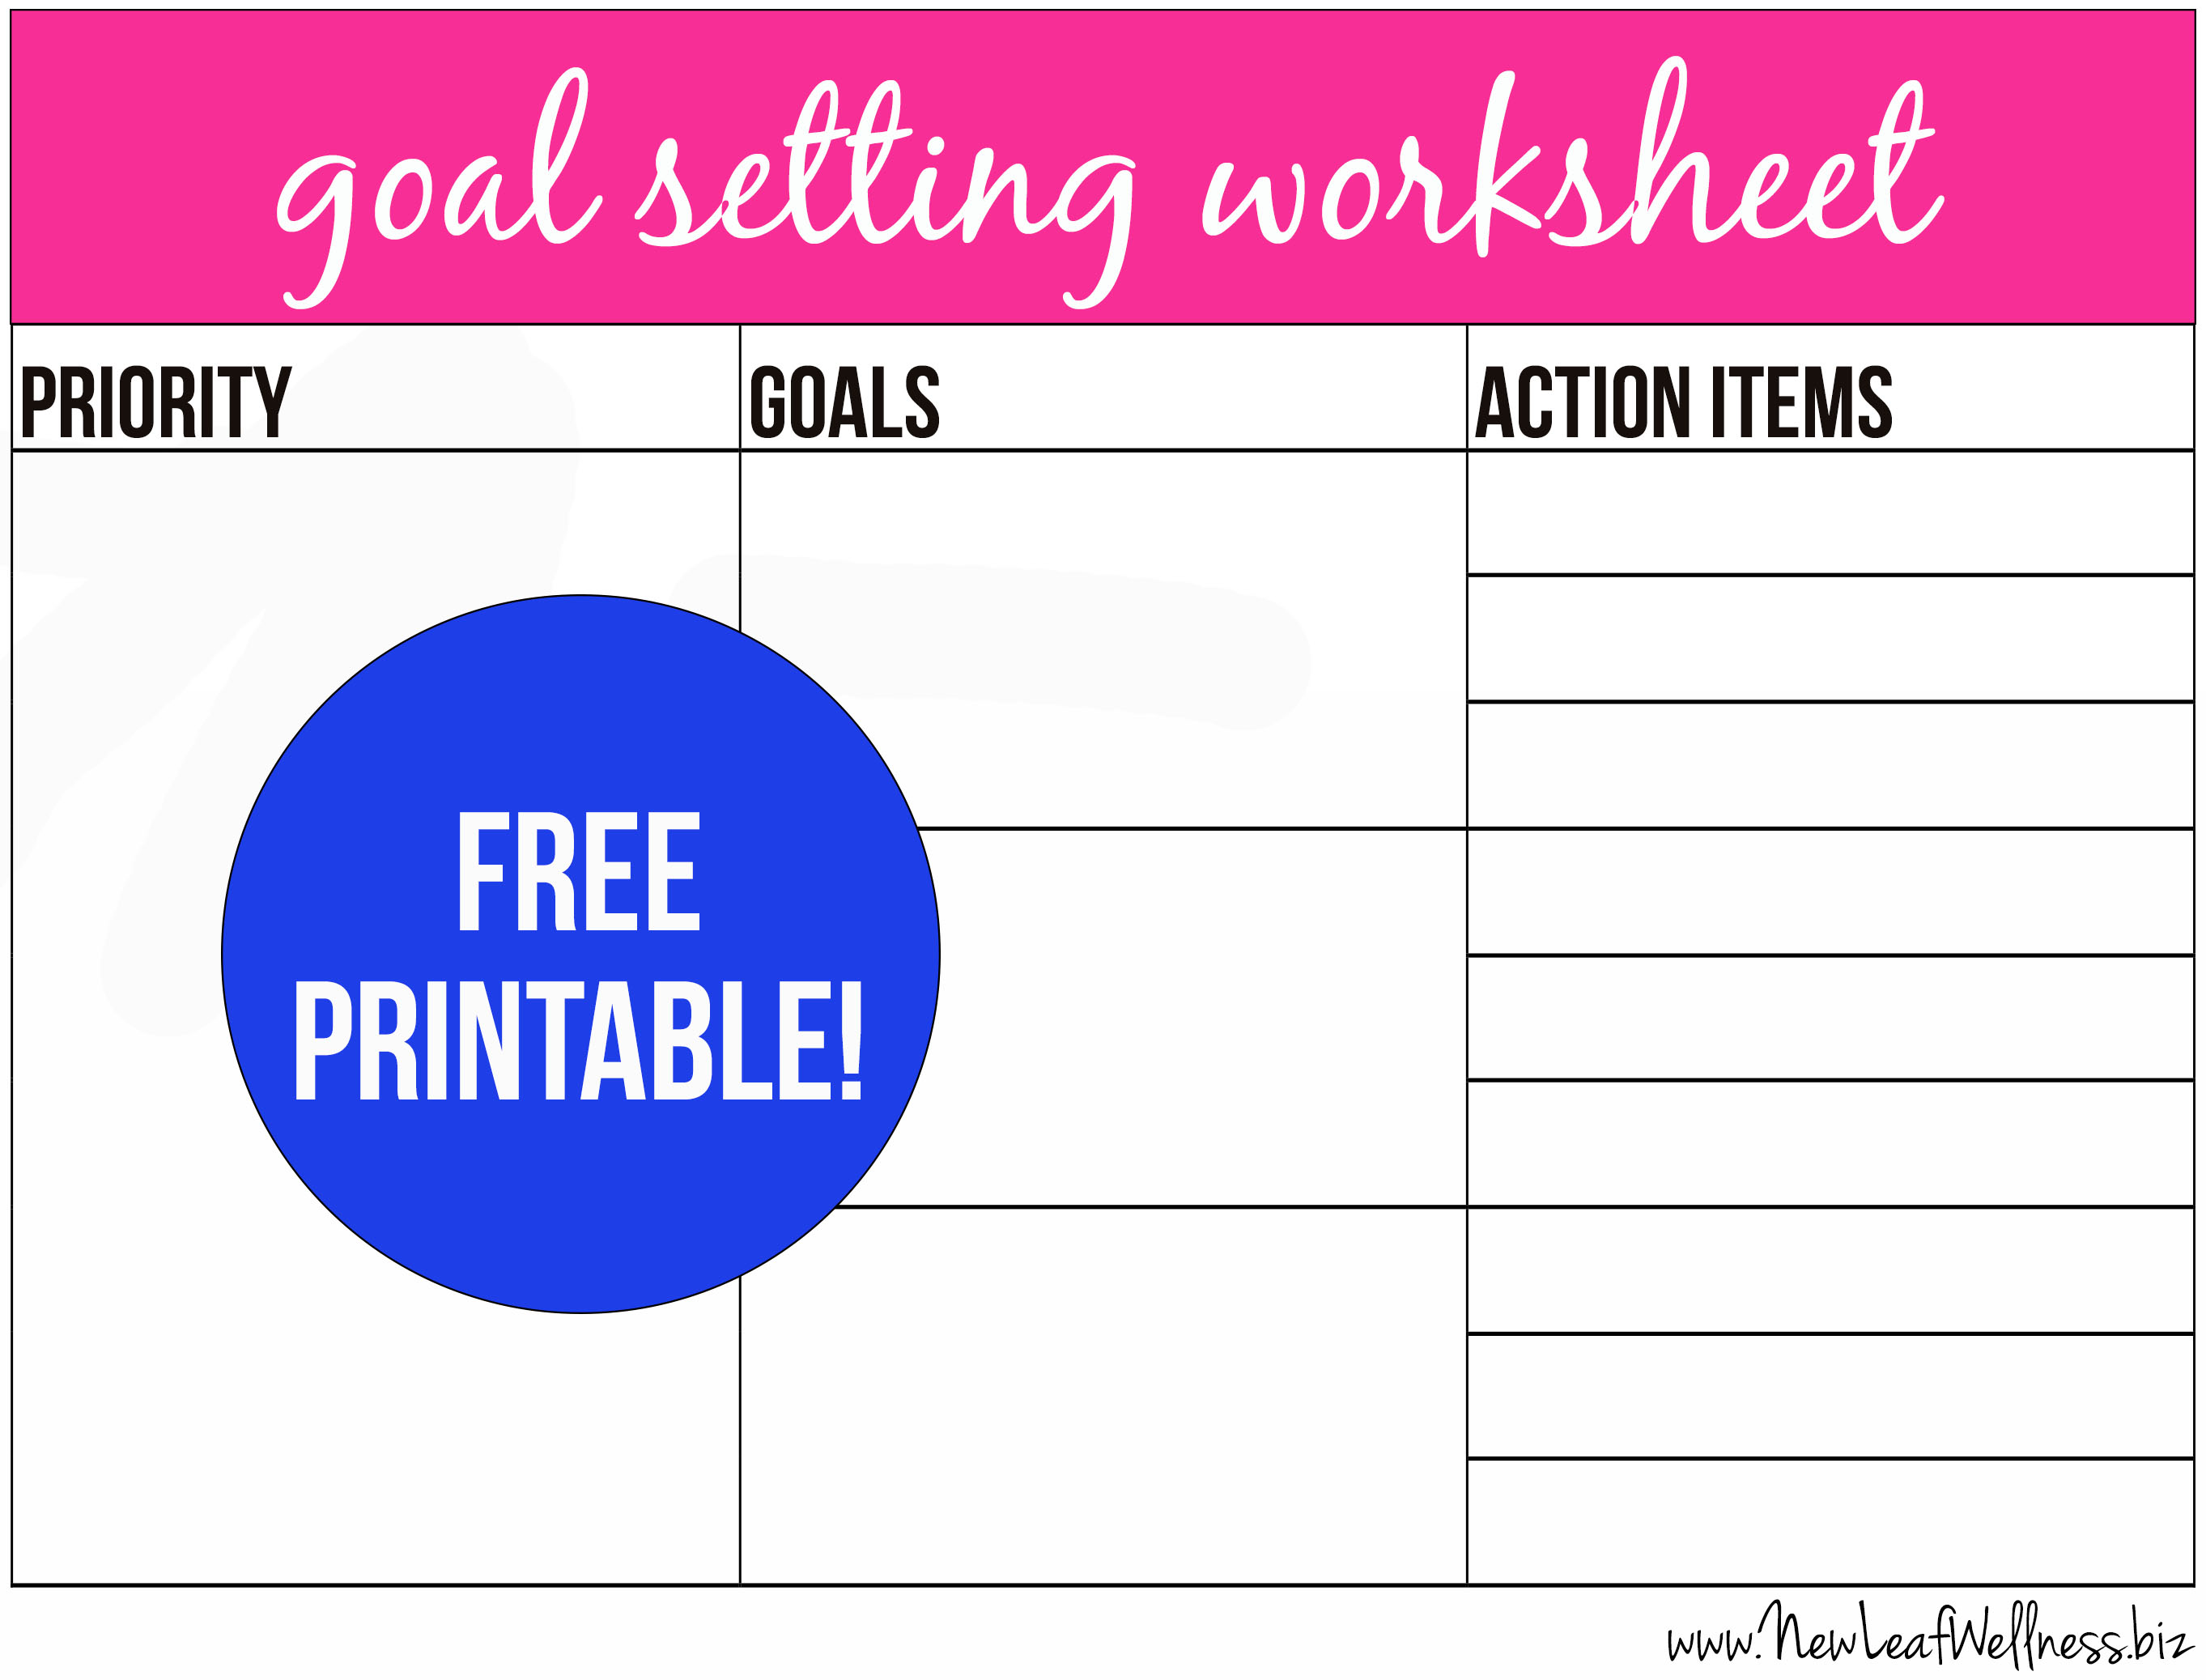 Free Printable Goal Setting Worksheet And Instructions